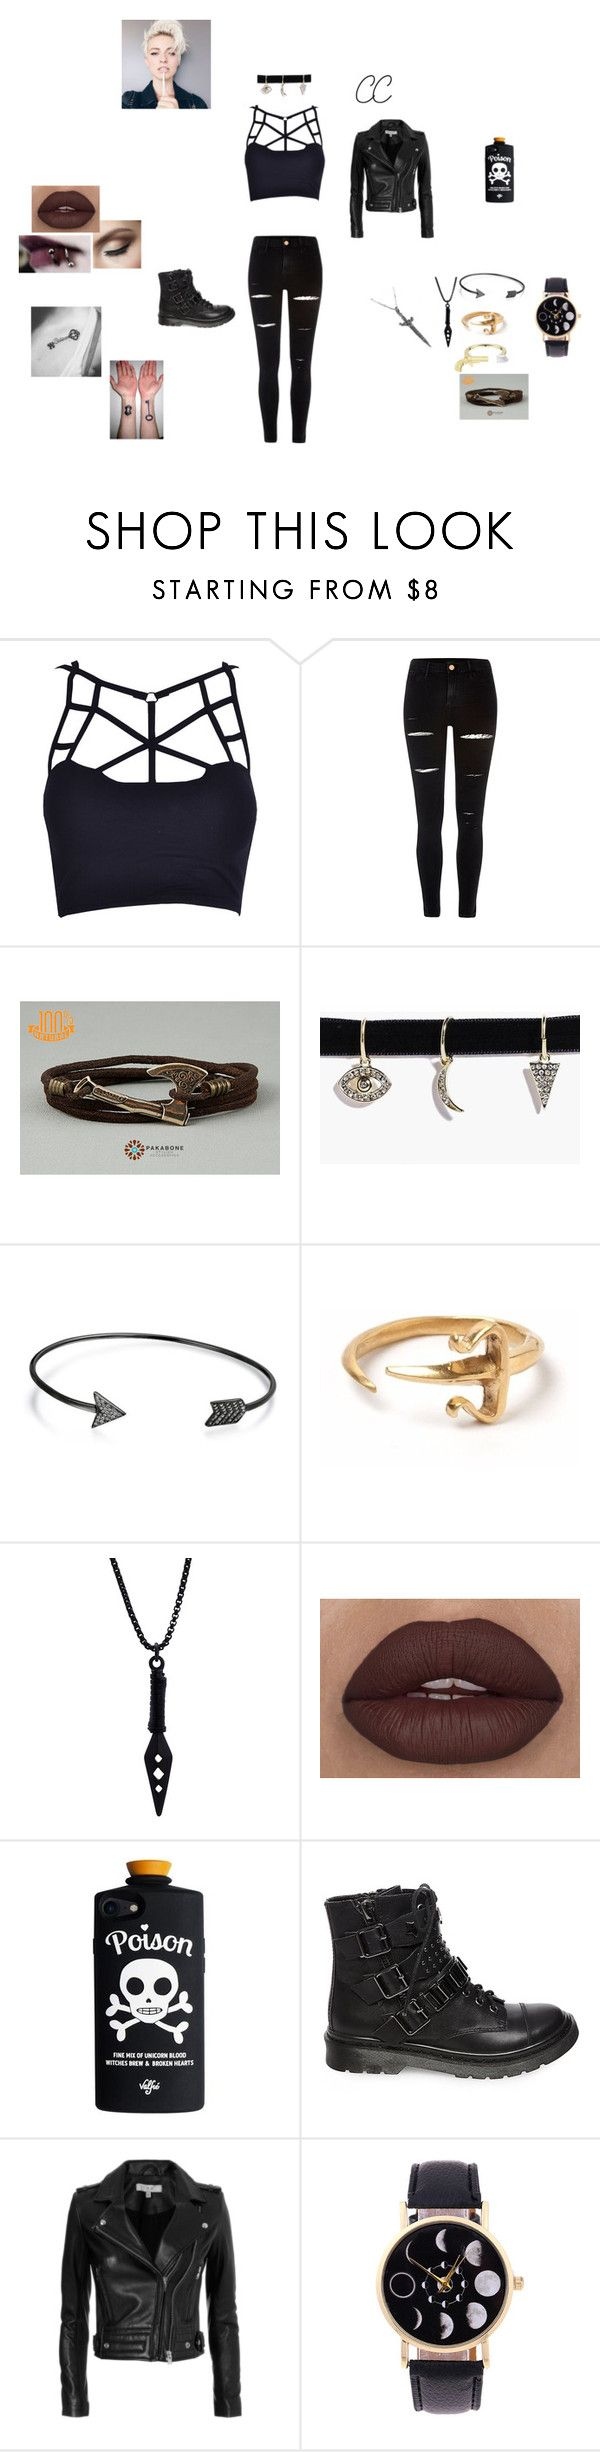 """""""CC bad girl"""" by carson-1005 on Polyvore featuring River Island, Finn Jewelry, Boohoo, Bling Jewelry, LeiVanKash, Steve Madden and IRO"""